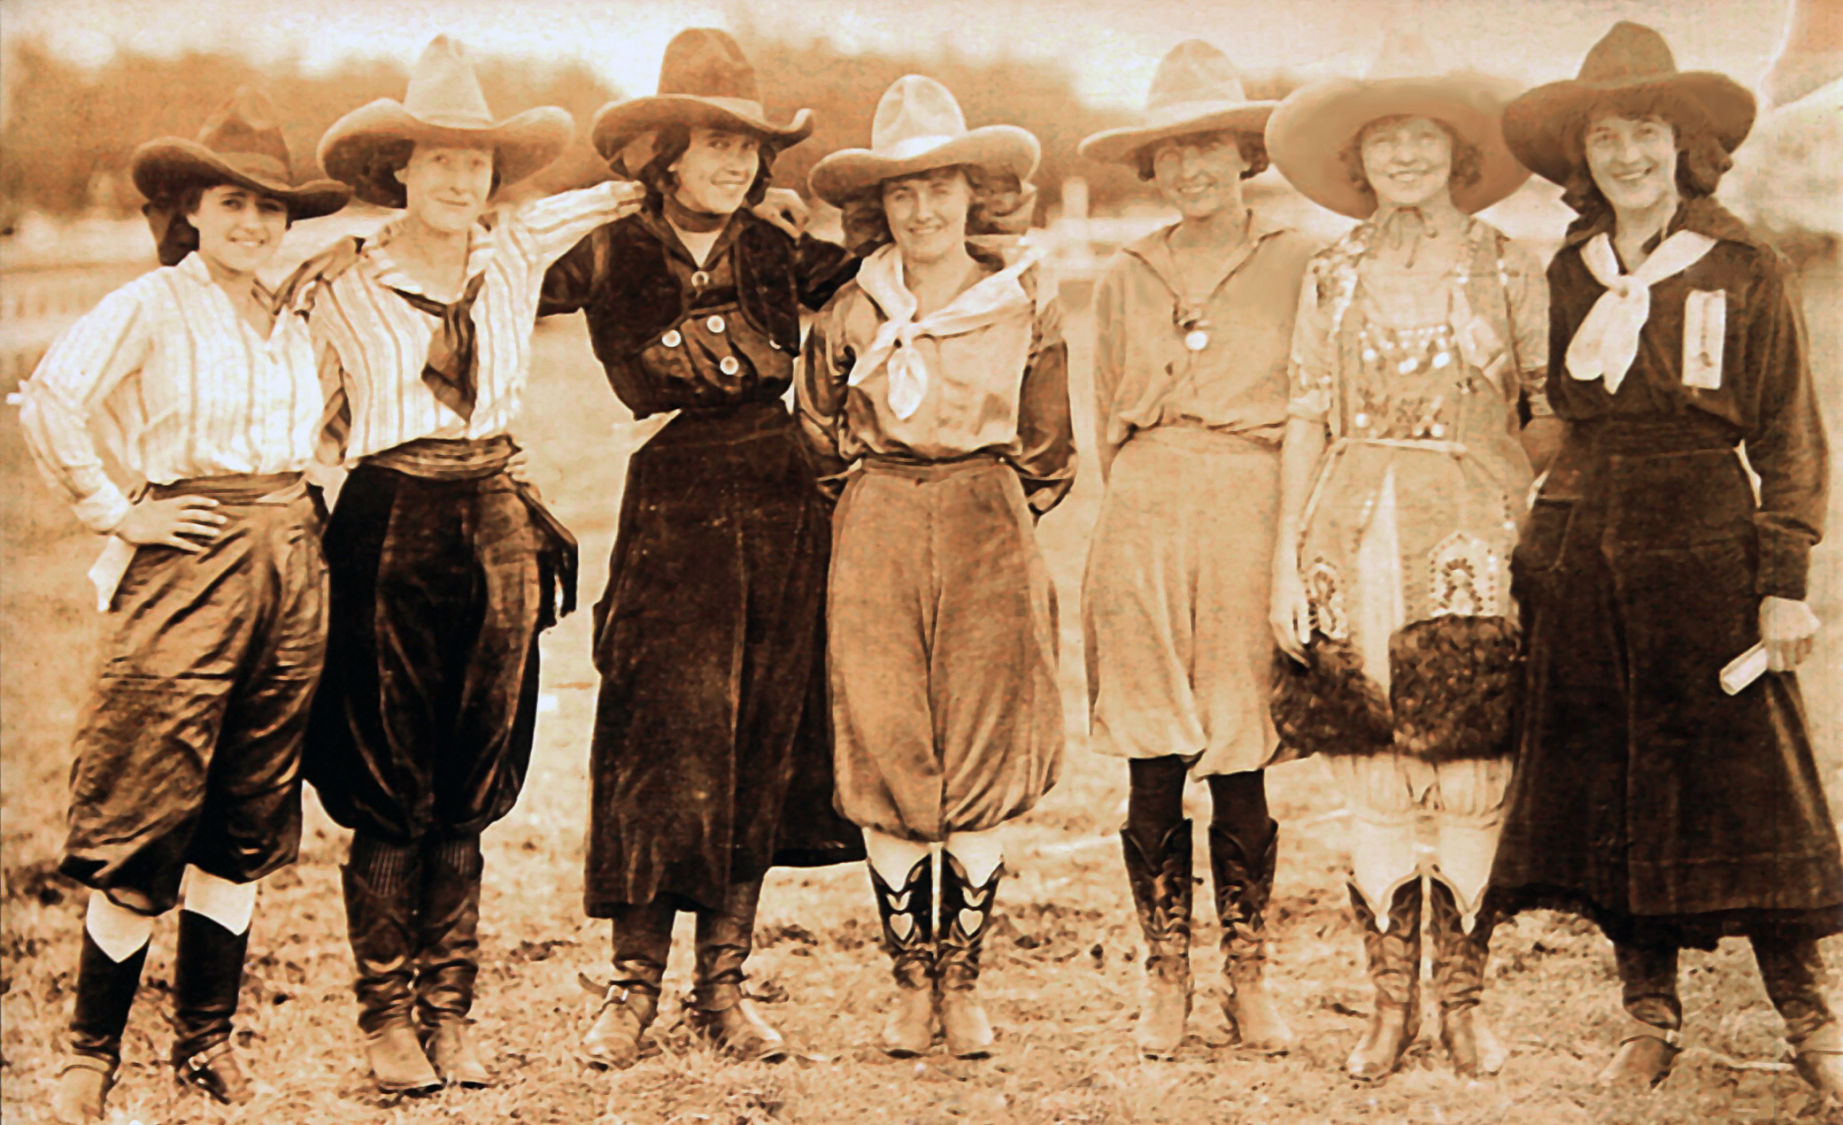 Cowgirls' glory days on exhibit